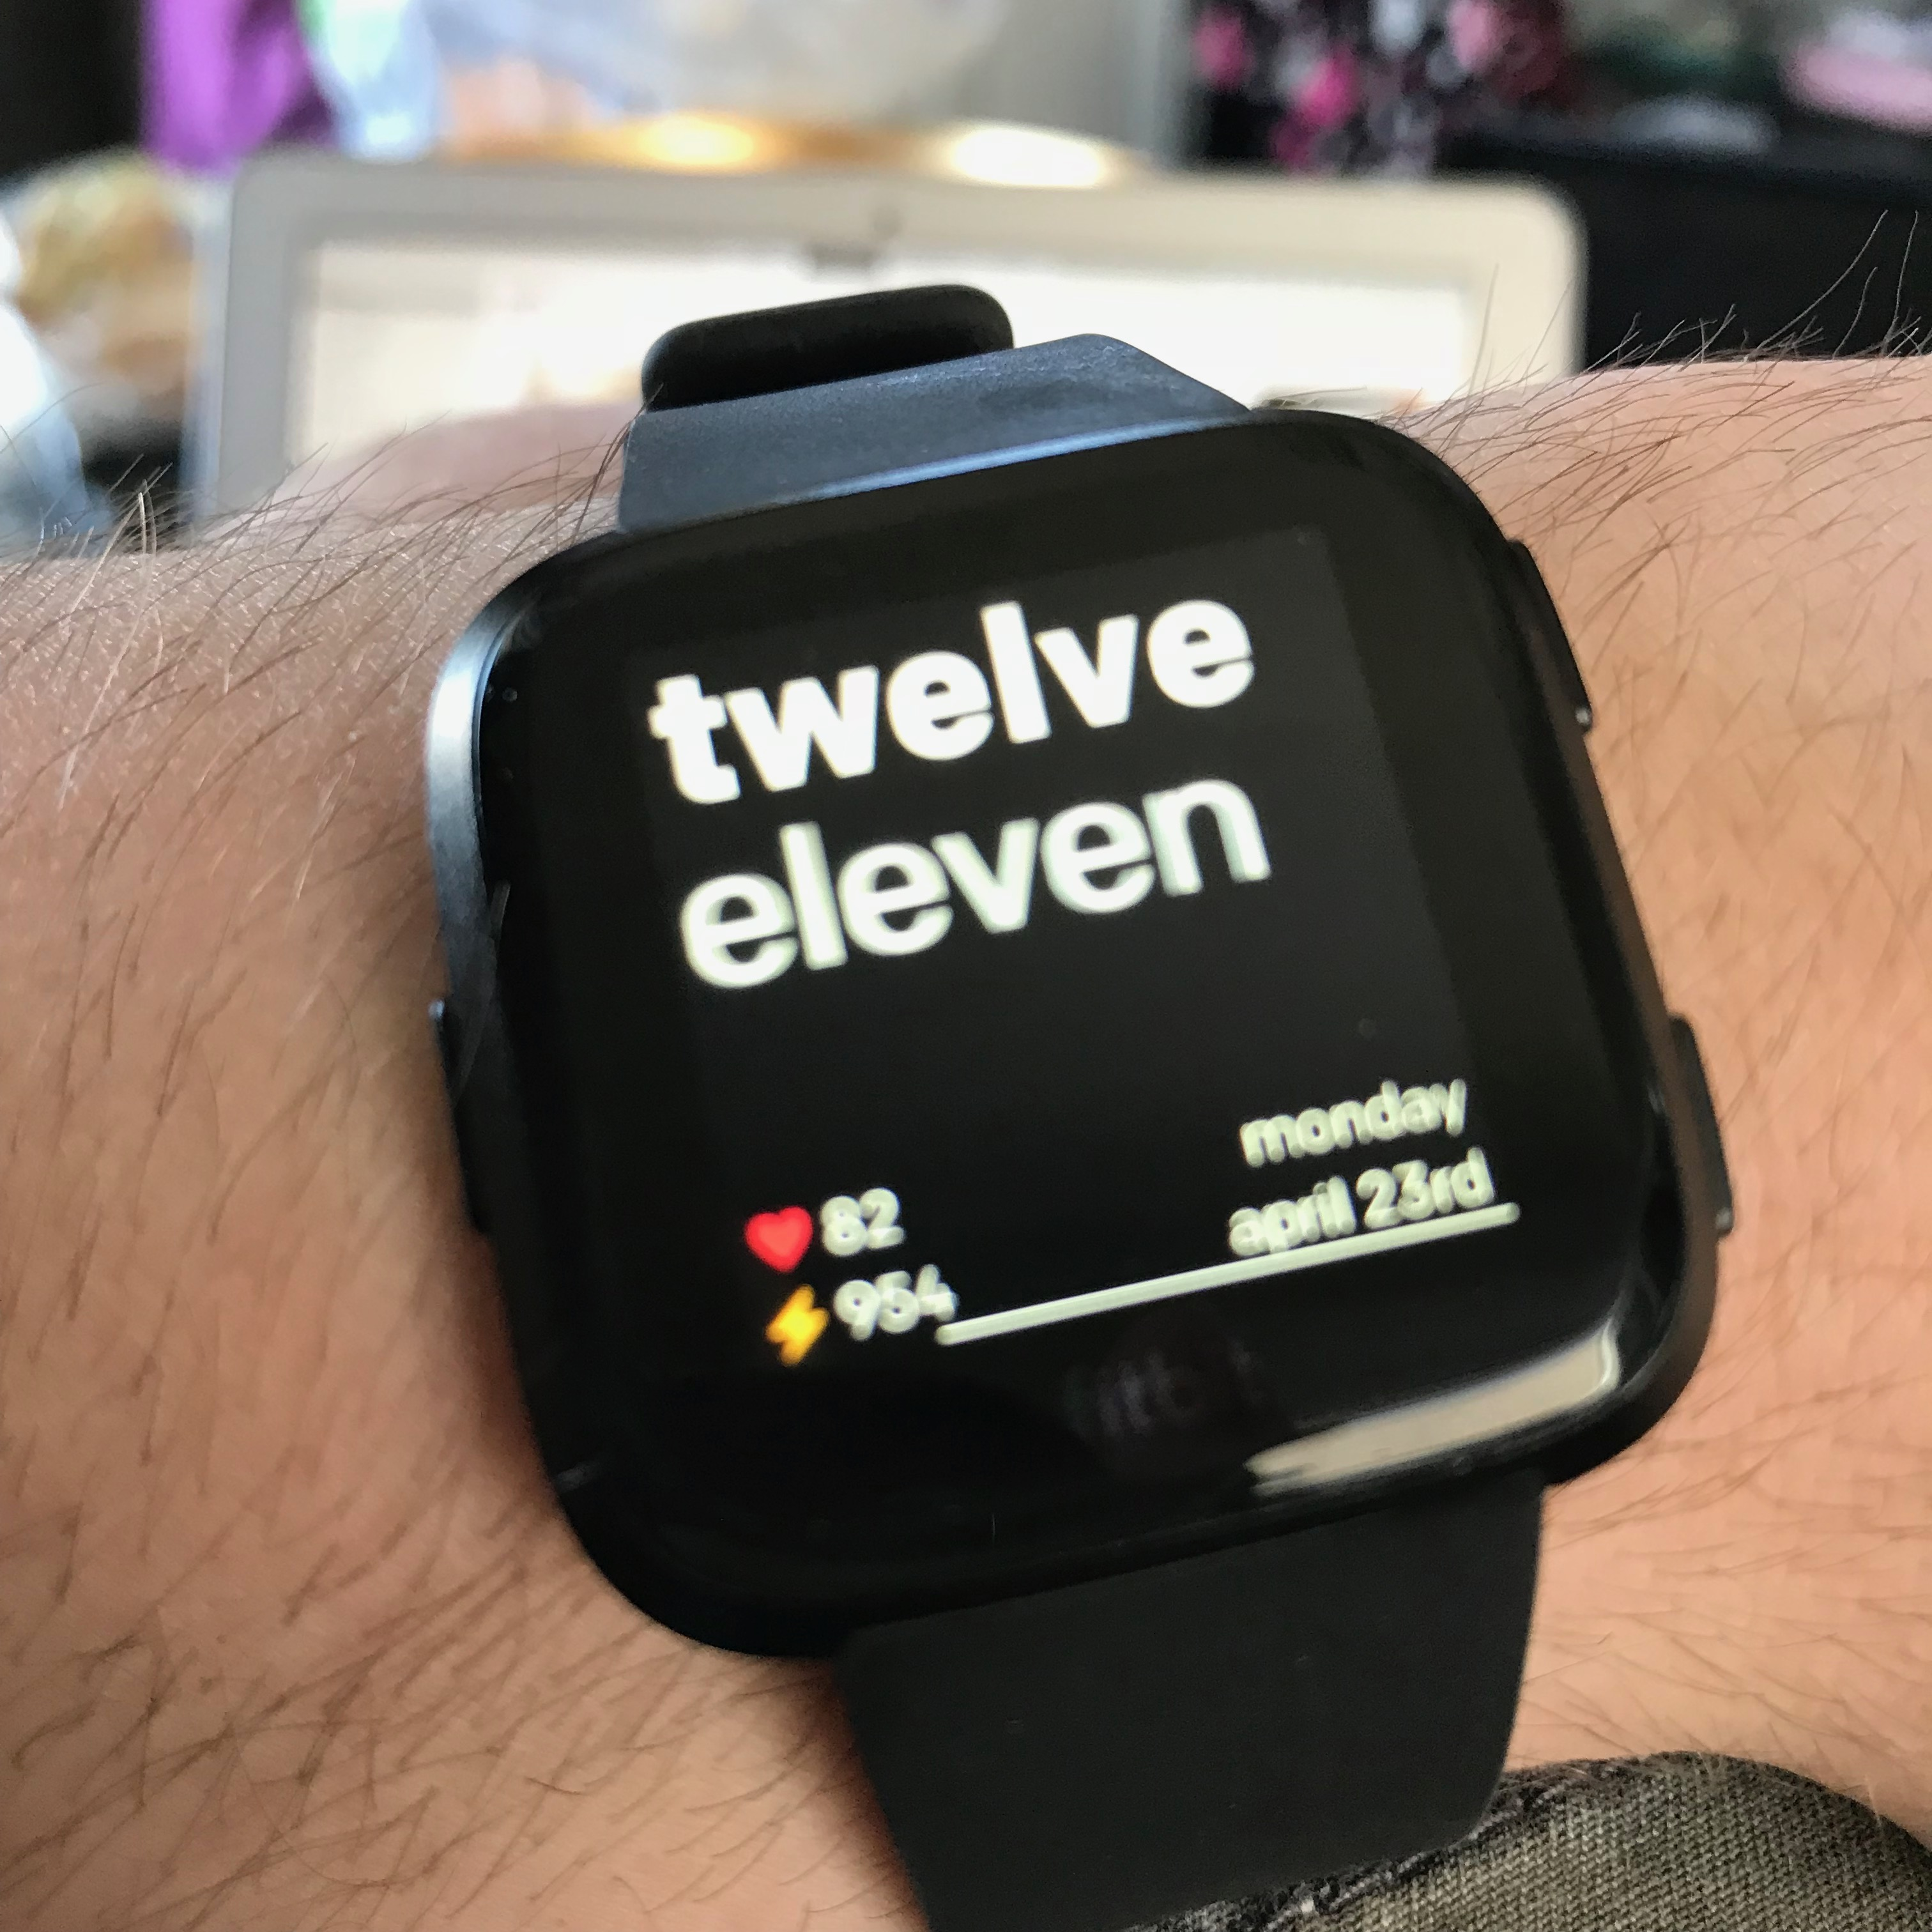 One week with the Fitbit Versa 63,000 steps later